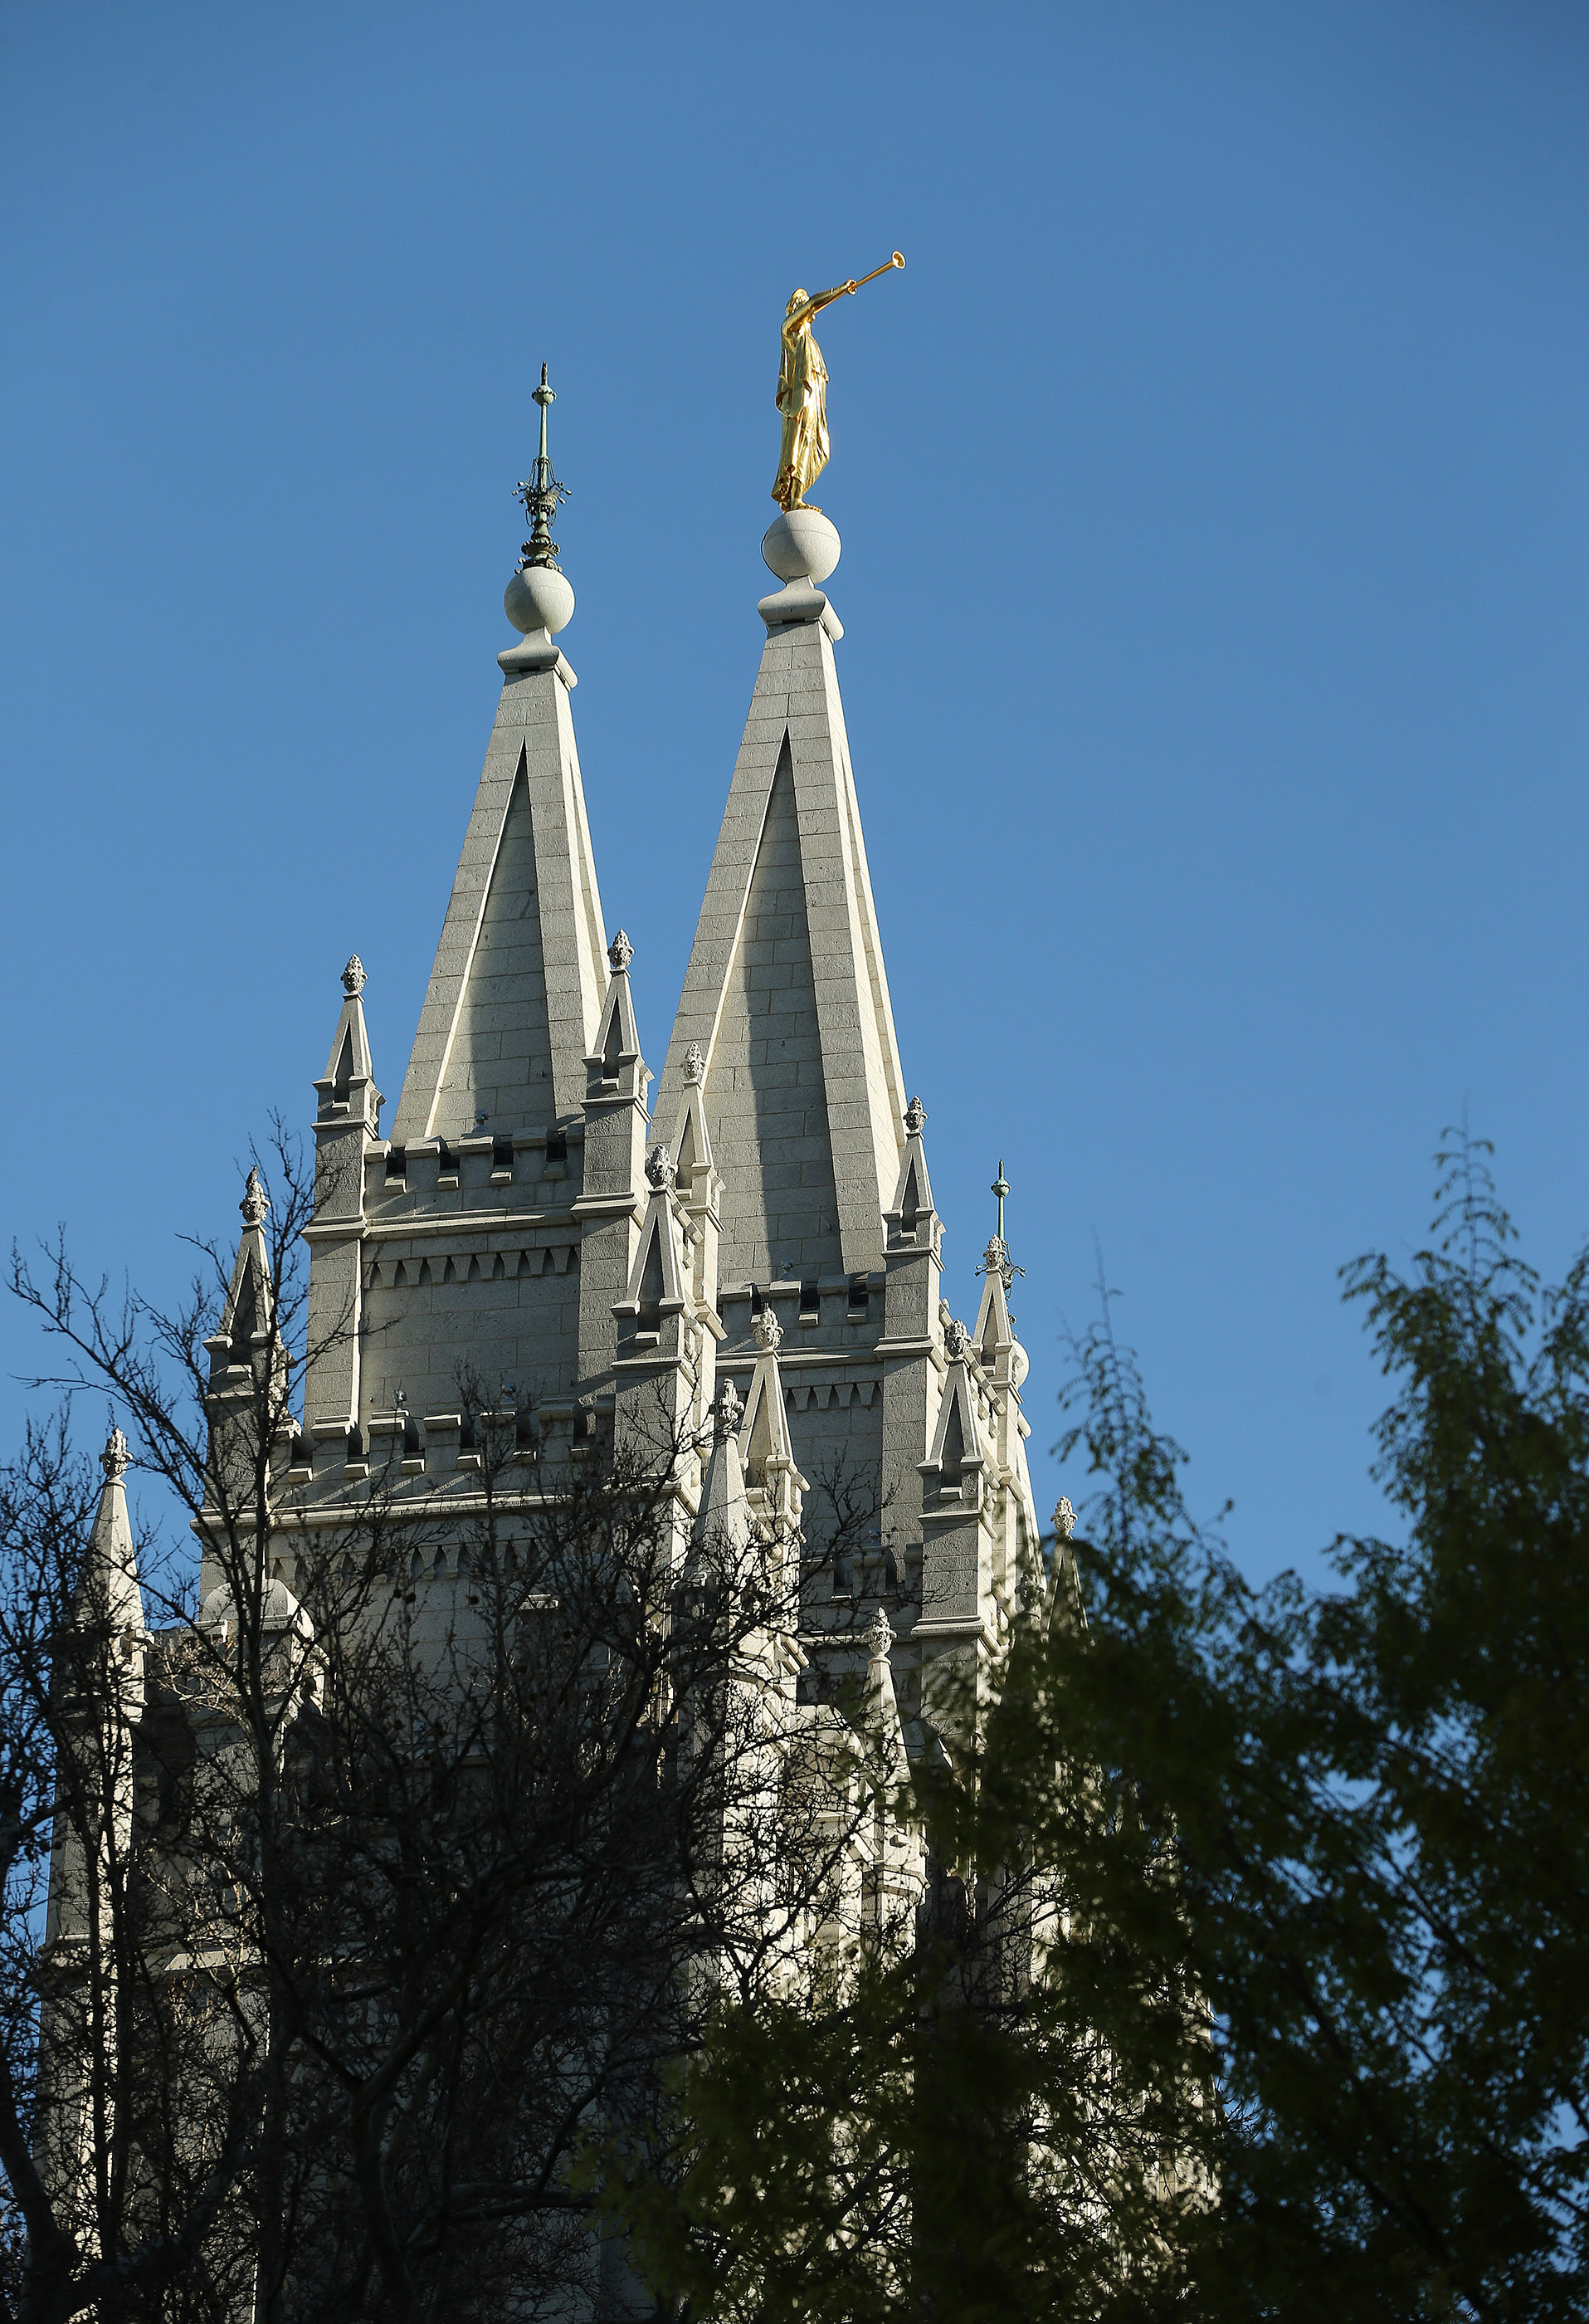 The Salt Lake Temple in Salt Lake City on Friday, April 19, 2019. Leaders of The Church of Jesus Christ of Latter-day Saints discontinued a policy Monday morning, May 6, requiring couples who marry civilly to wait one year before being sealed in the temple.